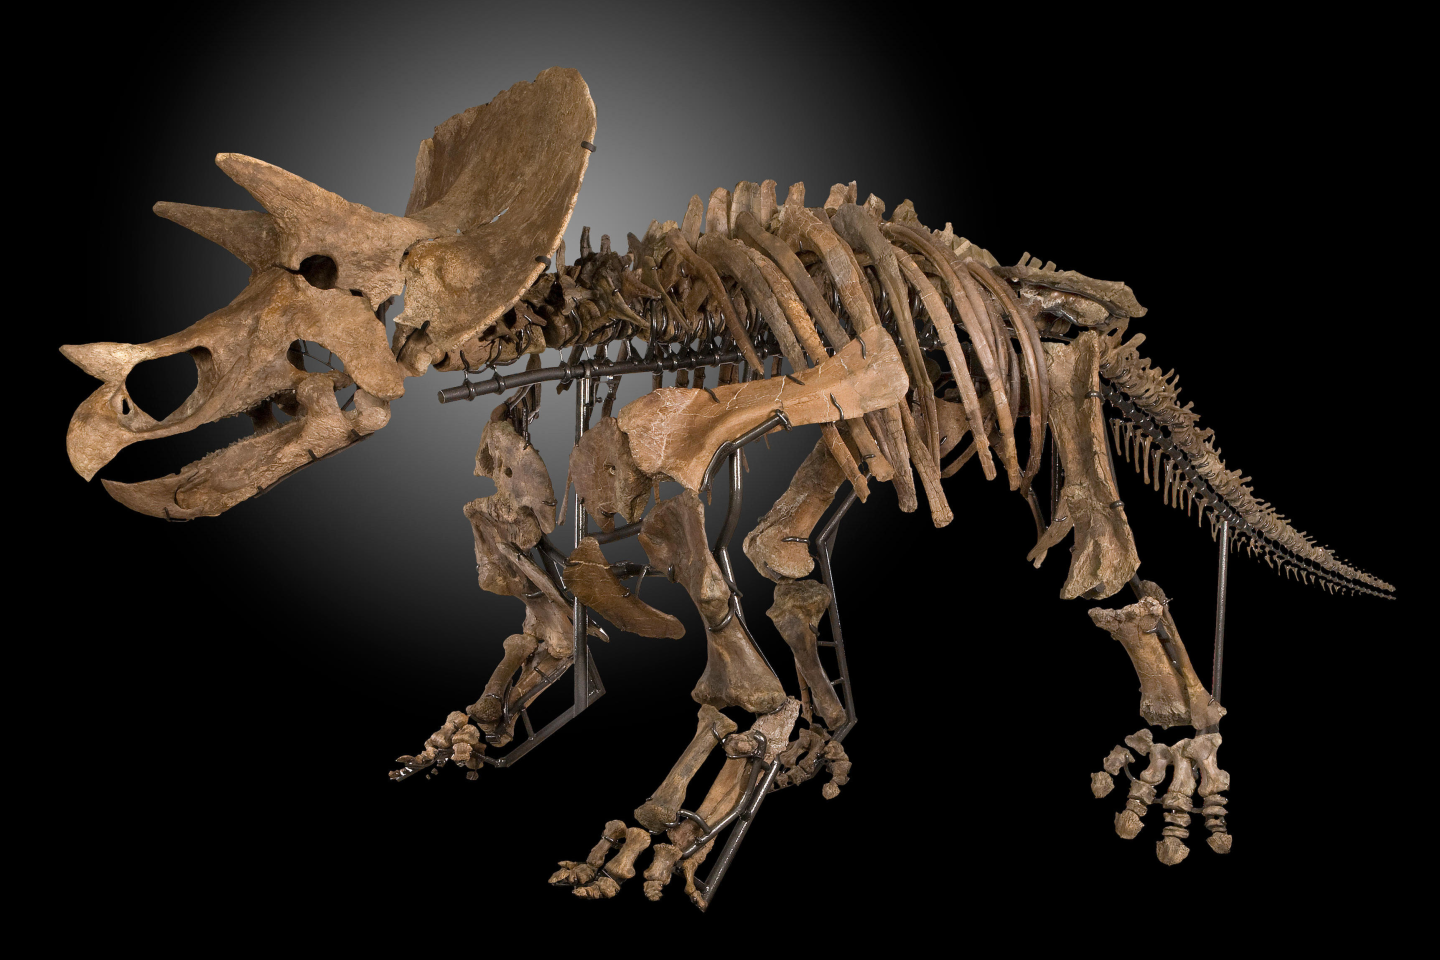 The amount of effort required to produce a full museum-quality-display dinosaur skeleton from an archeological find is immense. The above Triceratops prorsus specimen was discovered in 2012 on a private ranch in Montana when pieces of dinosaur bone were found. These bone fragments were followed and eventually large bones indicated the presence of a large Ceratopsian dinosaur. Many of these bones needed to be excavated, meaning the entire process took many weeks as the specimen could be damaged if the work was not slow and careful. Each specimen was covered in plaster jackets and removed from the field to the lab. The bones were then carefully removed from their field jackets and prepared using hand tools. Broken bones were professionally repaired and restored while several missing elements were cast from other Triceratops skeletons to complete the skeleton. A custom mount has been created to support the bones and the skull; innovative bracket mounts were crafted for each bone so that no bones were damaged in order to mount them. The bones were mounted in osteologically correct positions. Each such creature devours hundreds of hours of patient, exacting labor.